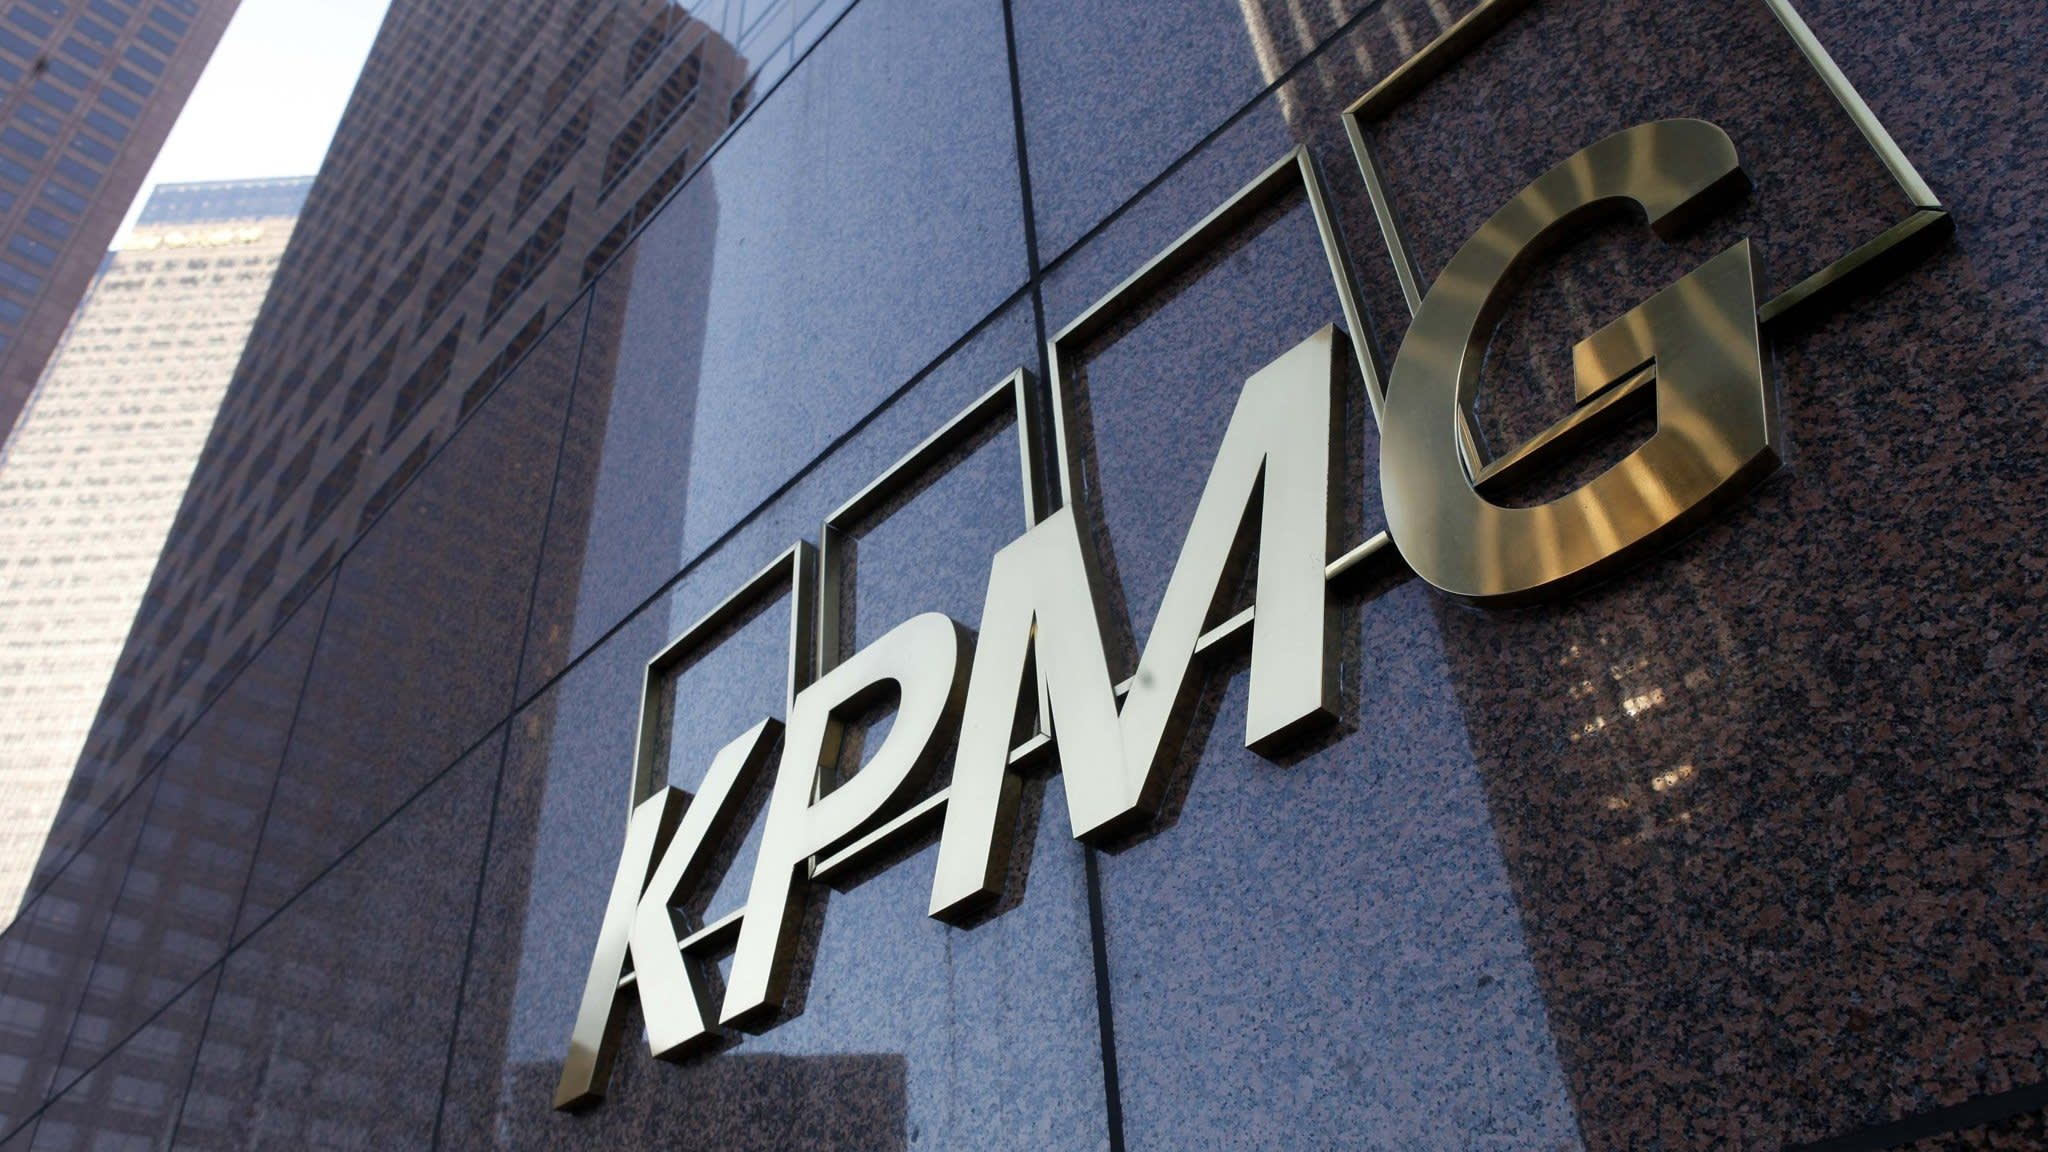 Kpmg Uk Staff Told To Hand Back Work Mobile Phones